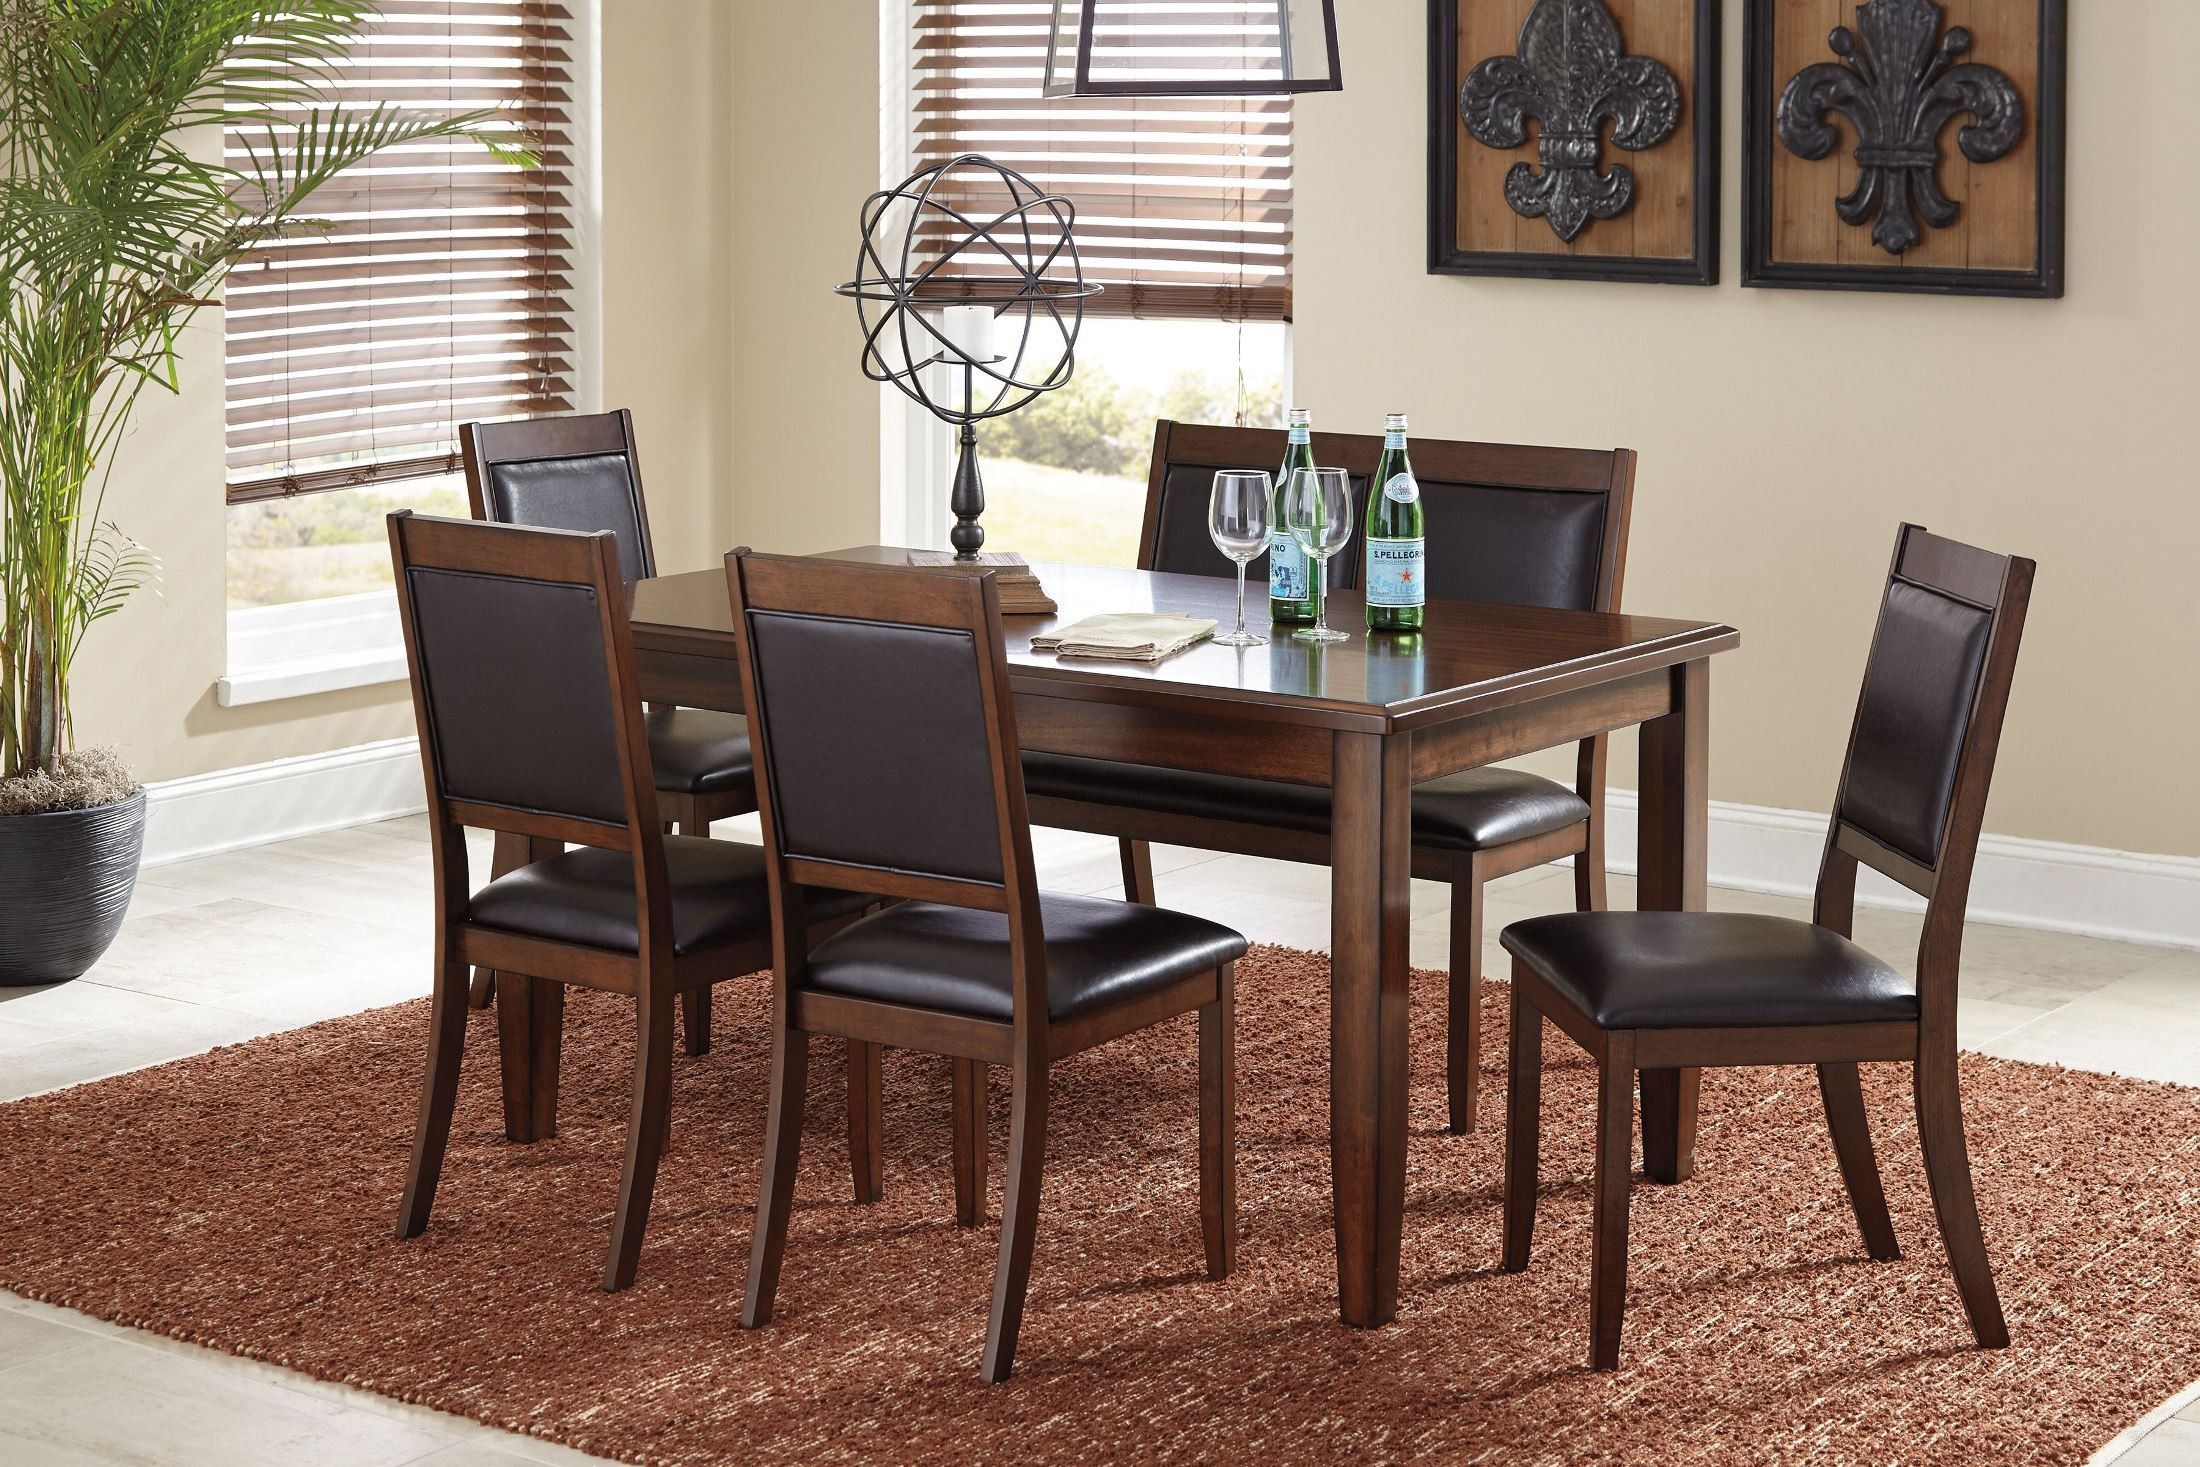 meredy brown 6 piece dining room set from ashley coleman. Black Bedroom Furniture Sets. Home Design Ideas